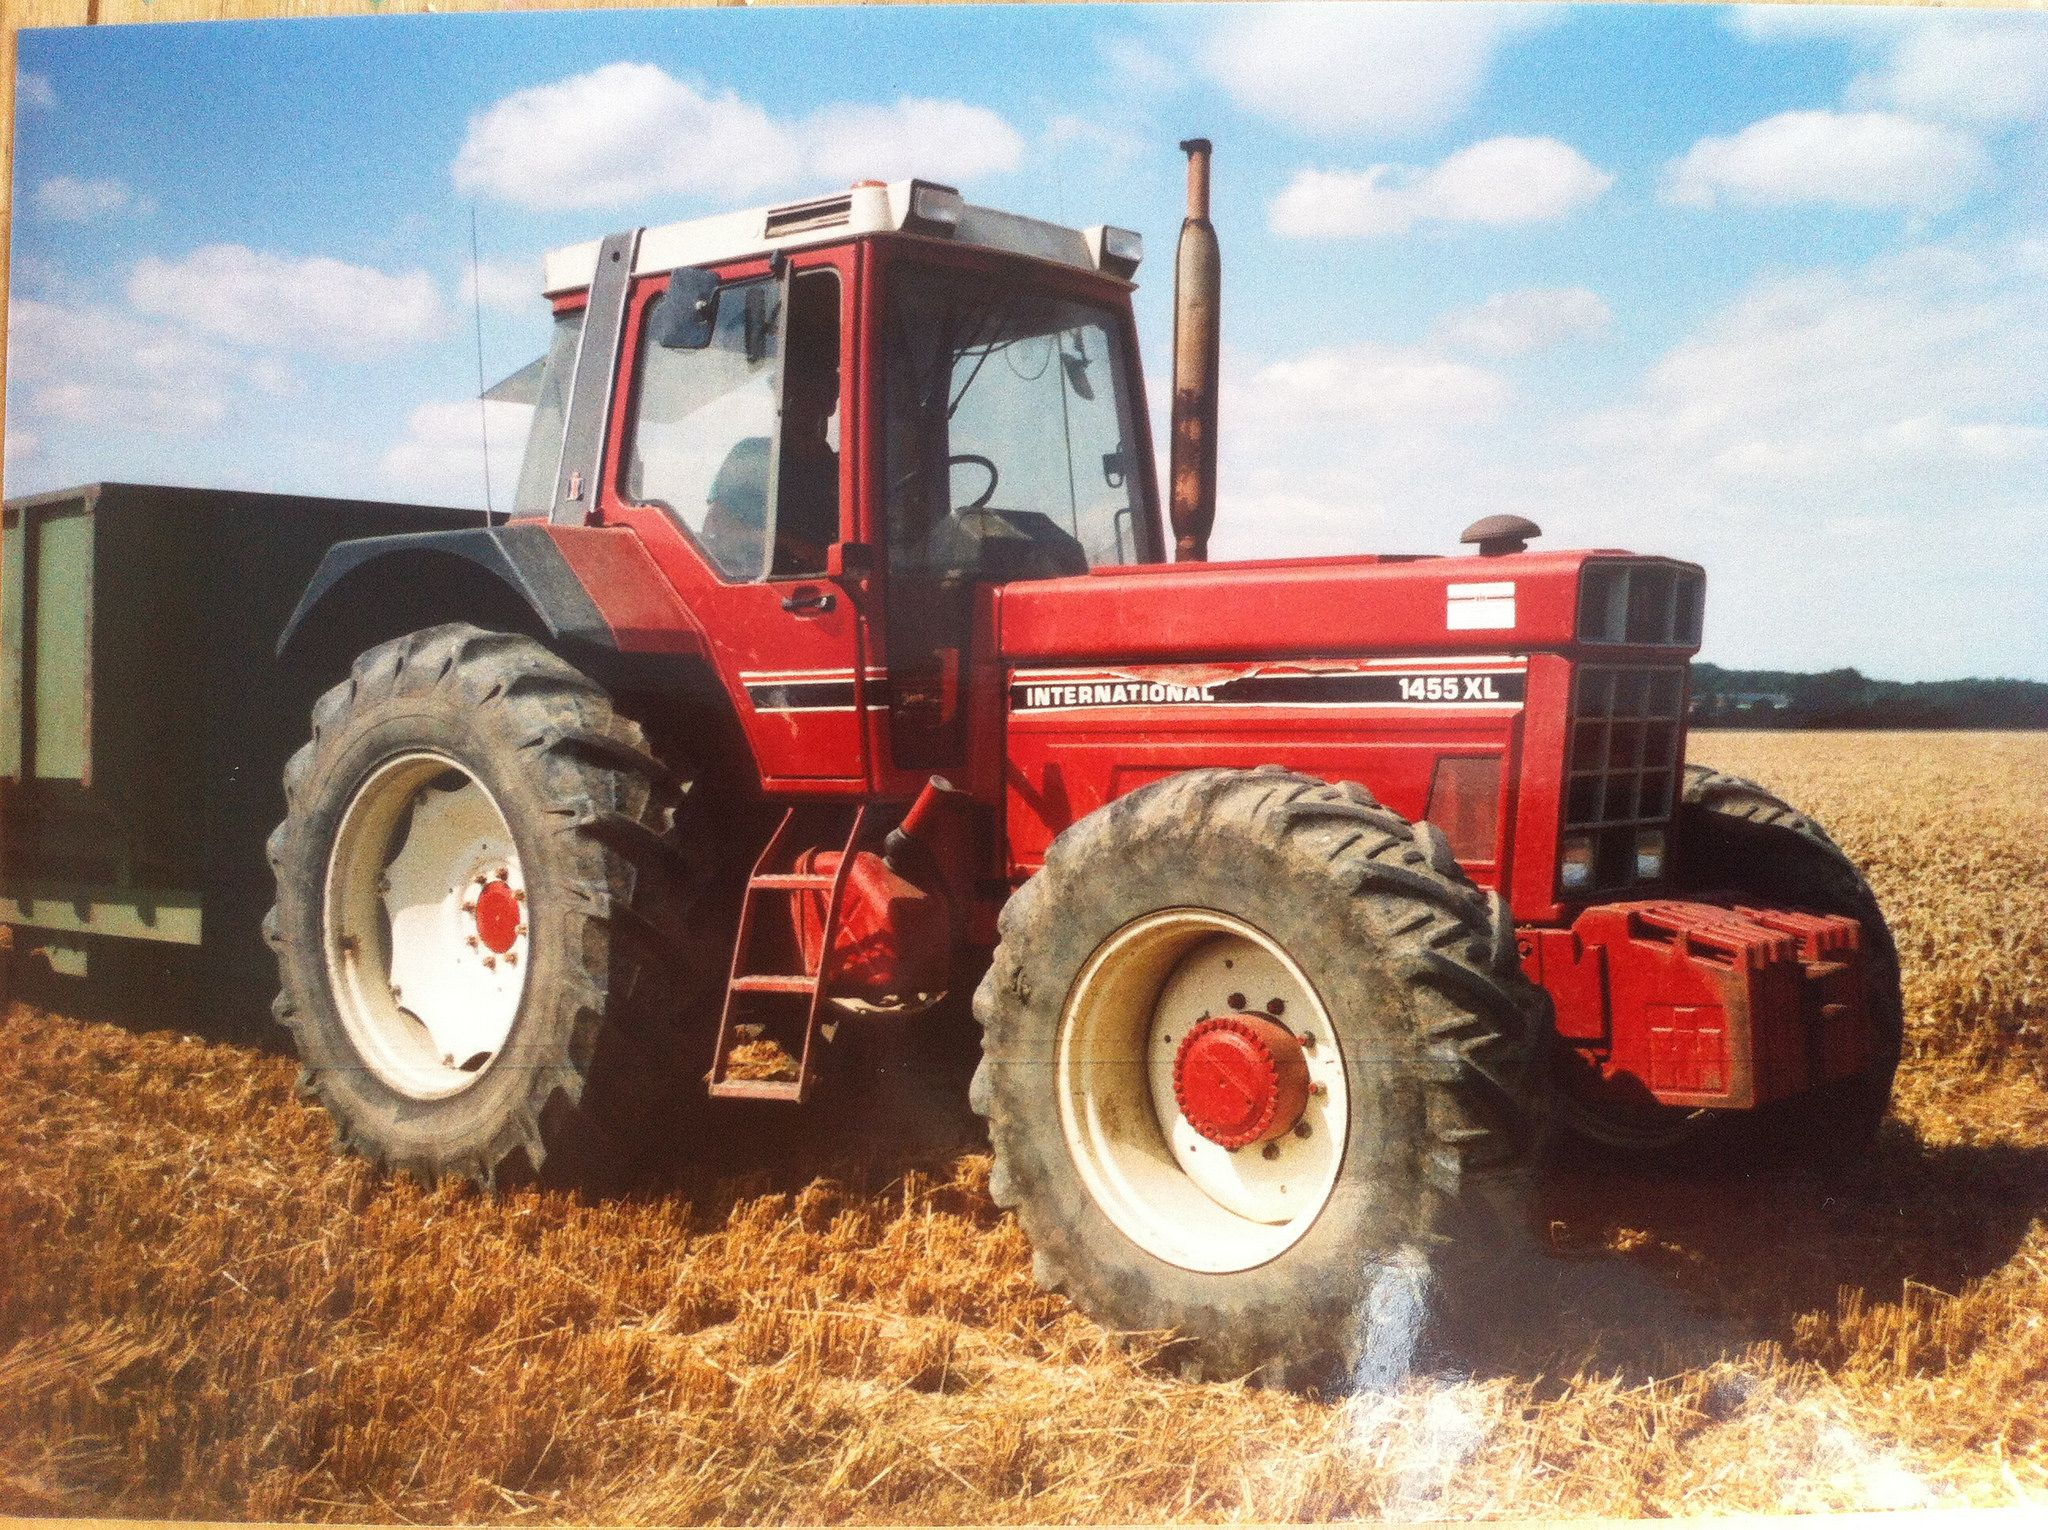 International 1455xl A Big Tractor In Its Day Complete With